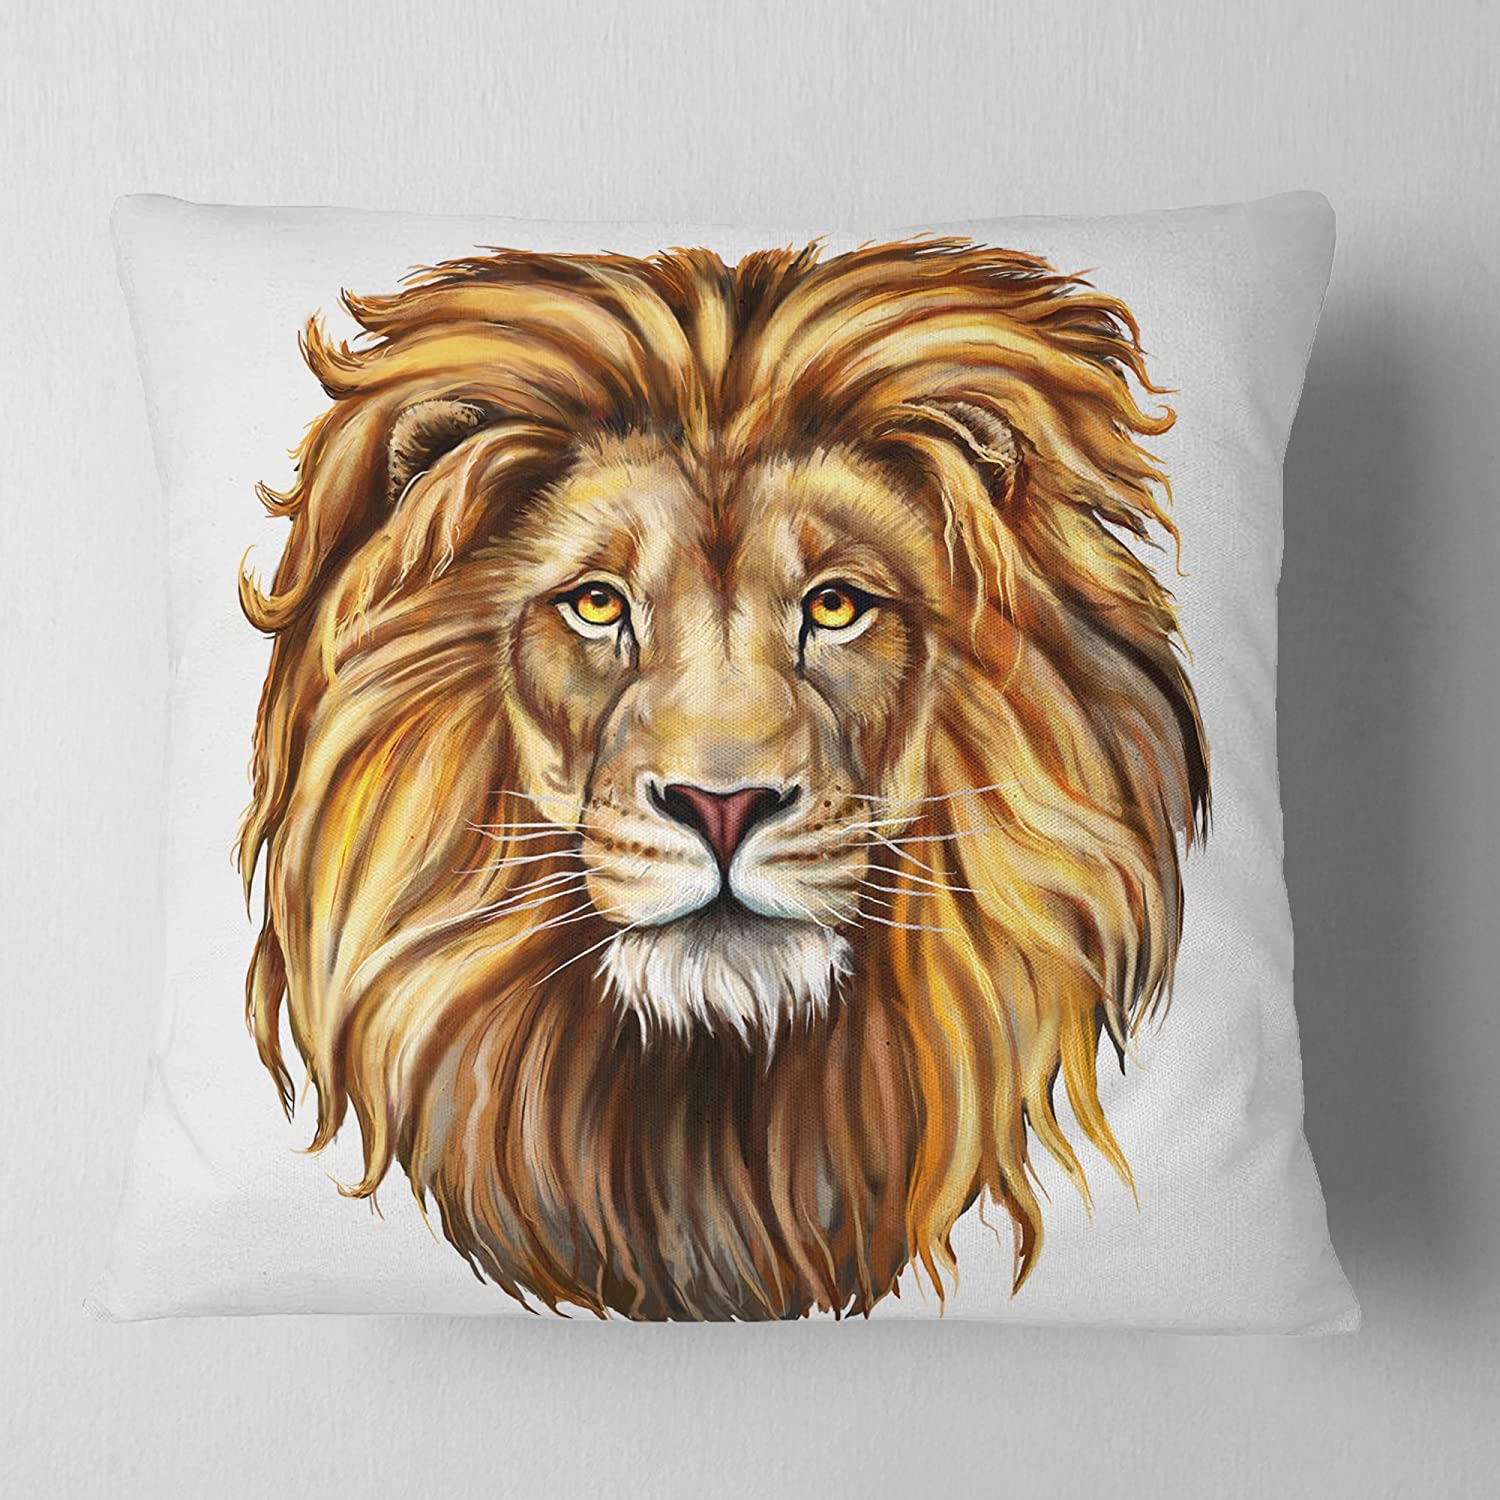 Designart CU6182-18-18 King Lion Aslan Animal Cushion Cover for Living Room Sofa Throw Pillow 18 in x 18 in in